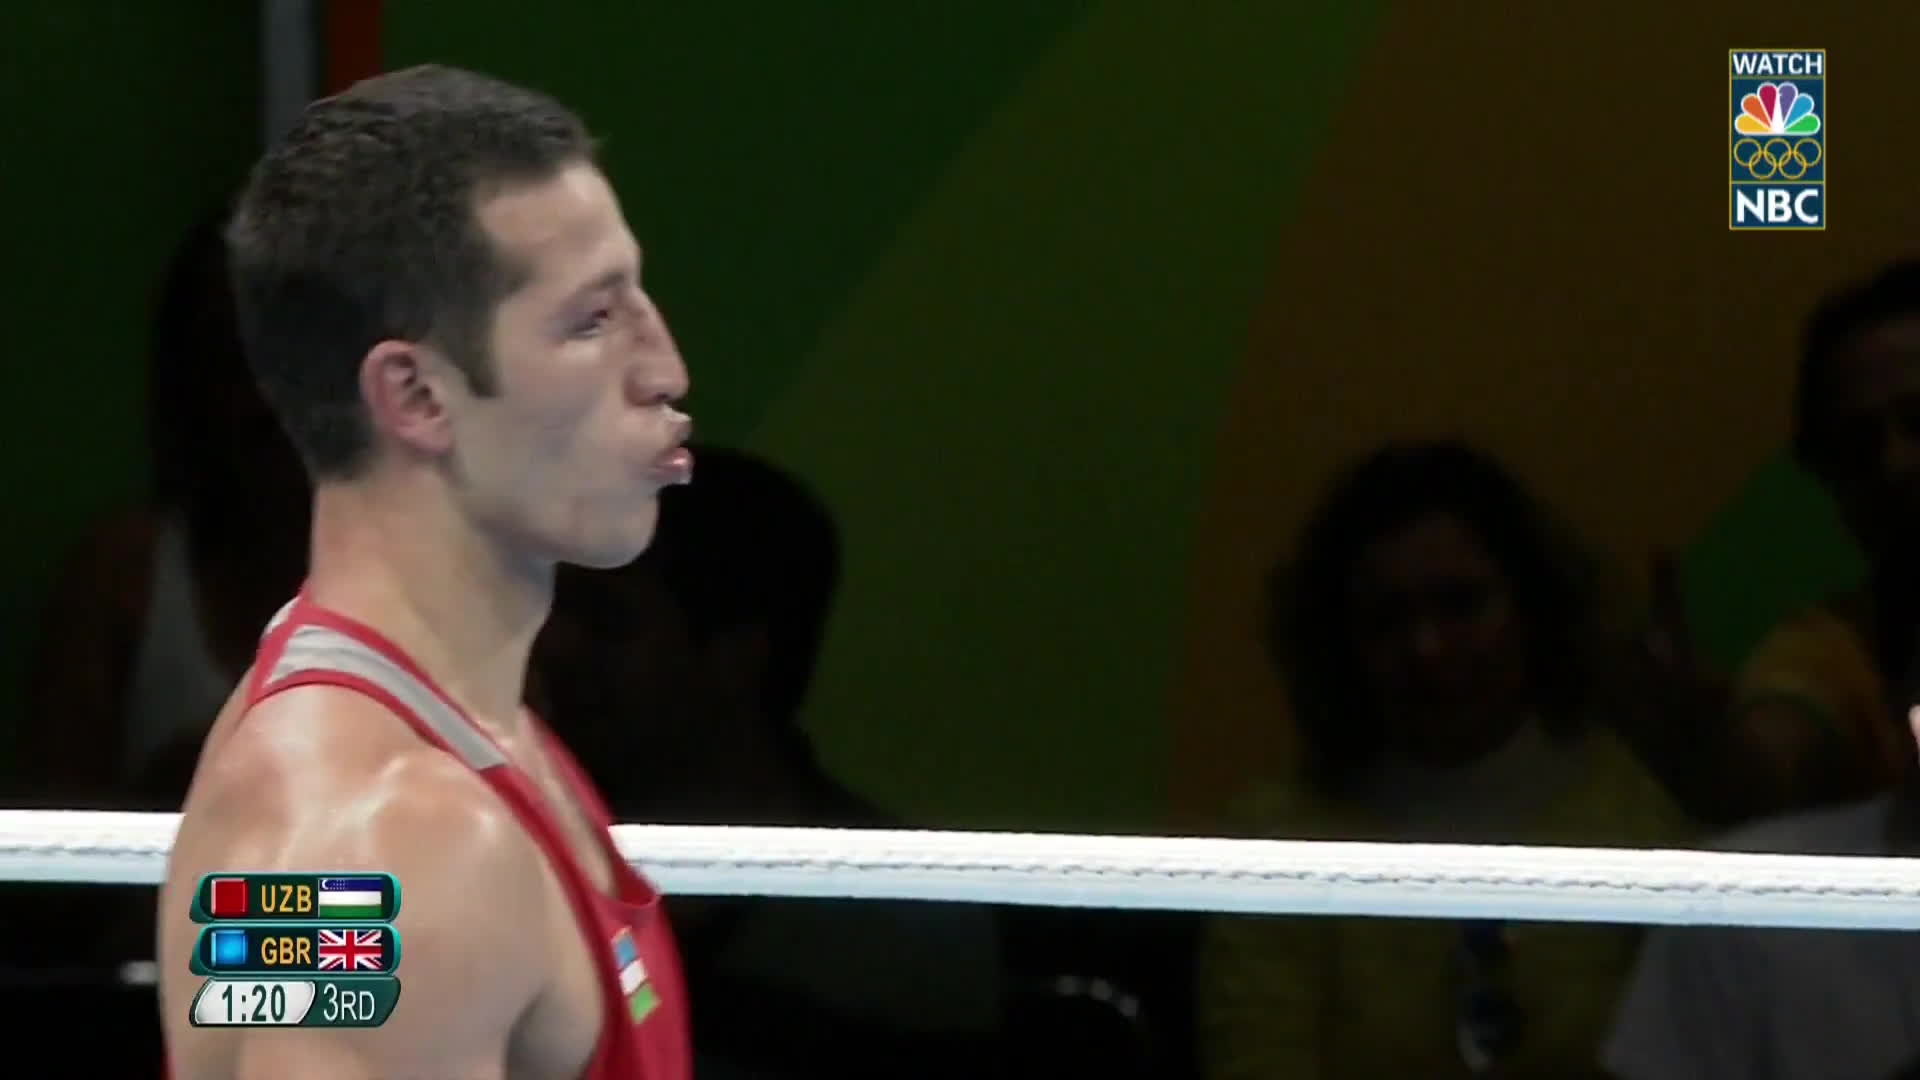 boxing, gifs, olymgifs, Great Britain's Buatsi pounds opponent's face for TKO GIFs